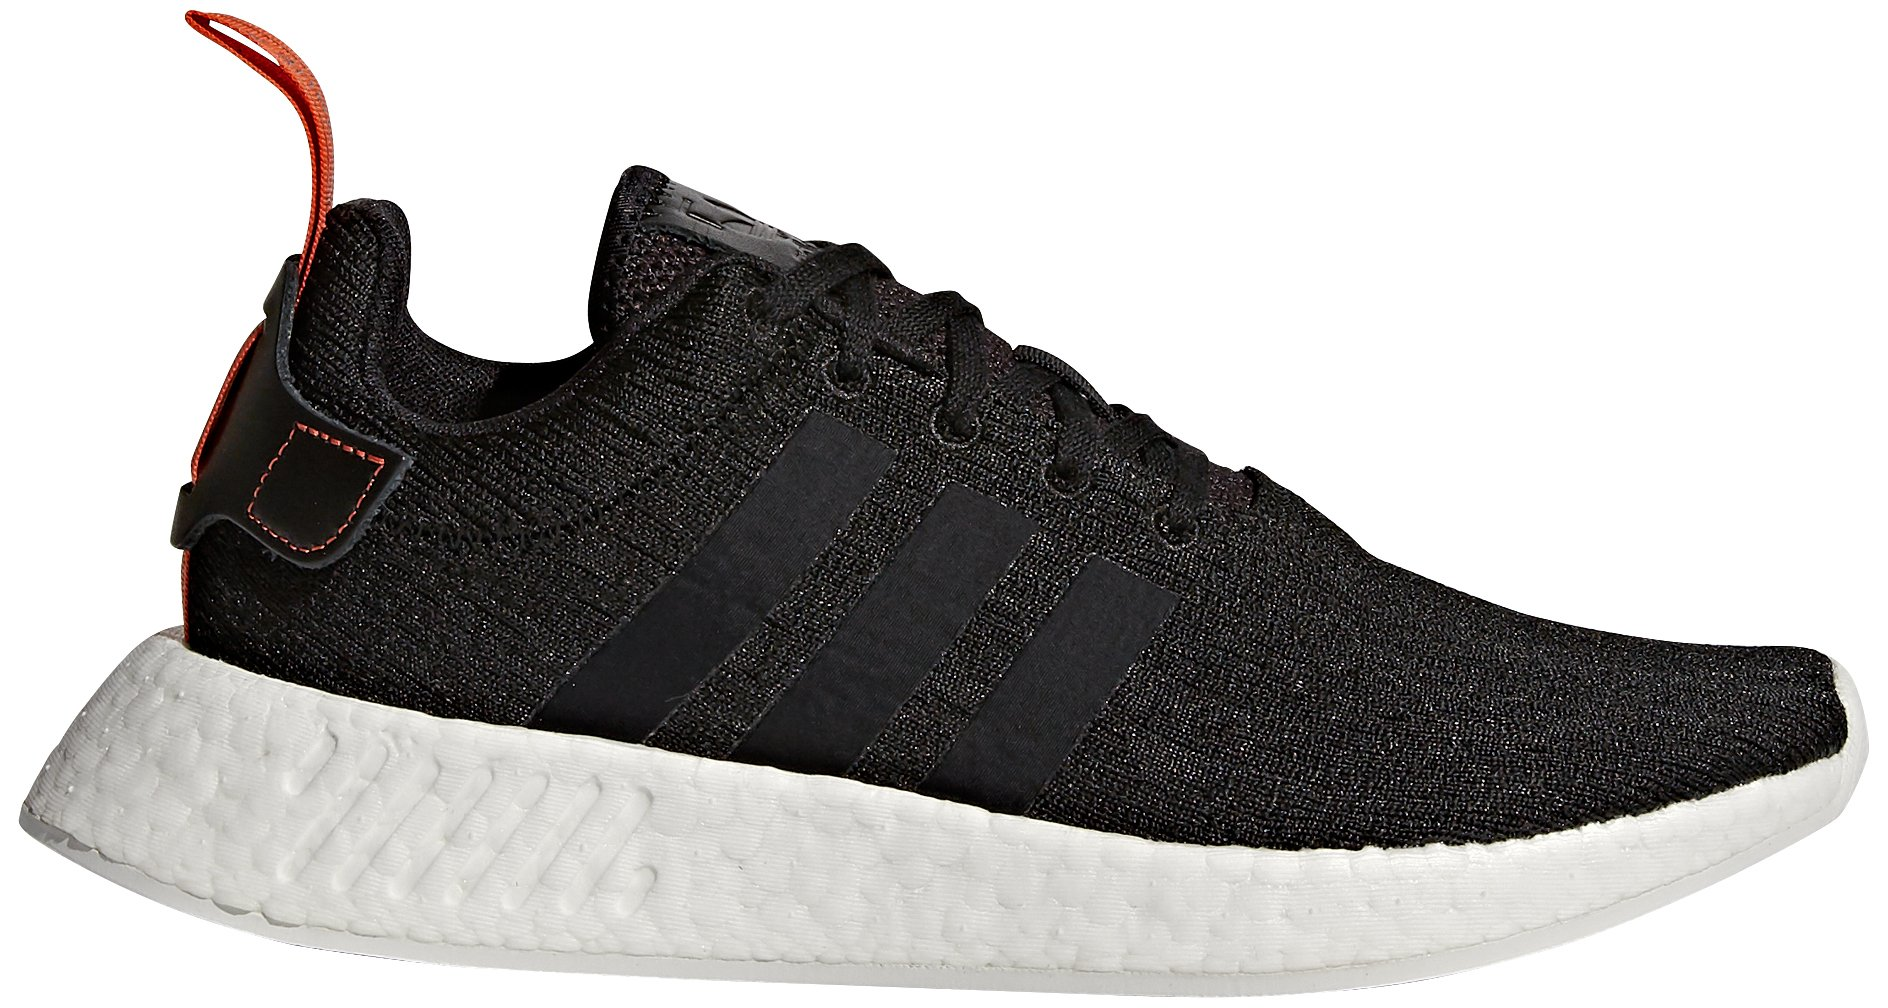 5b0e822130eef Galleon - Adidas Originals Men s NMD R2 Running Shoe Black Future Harvest